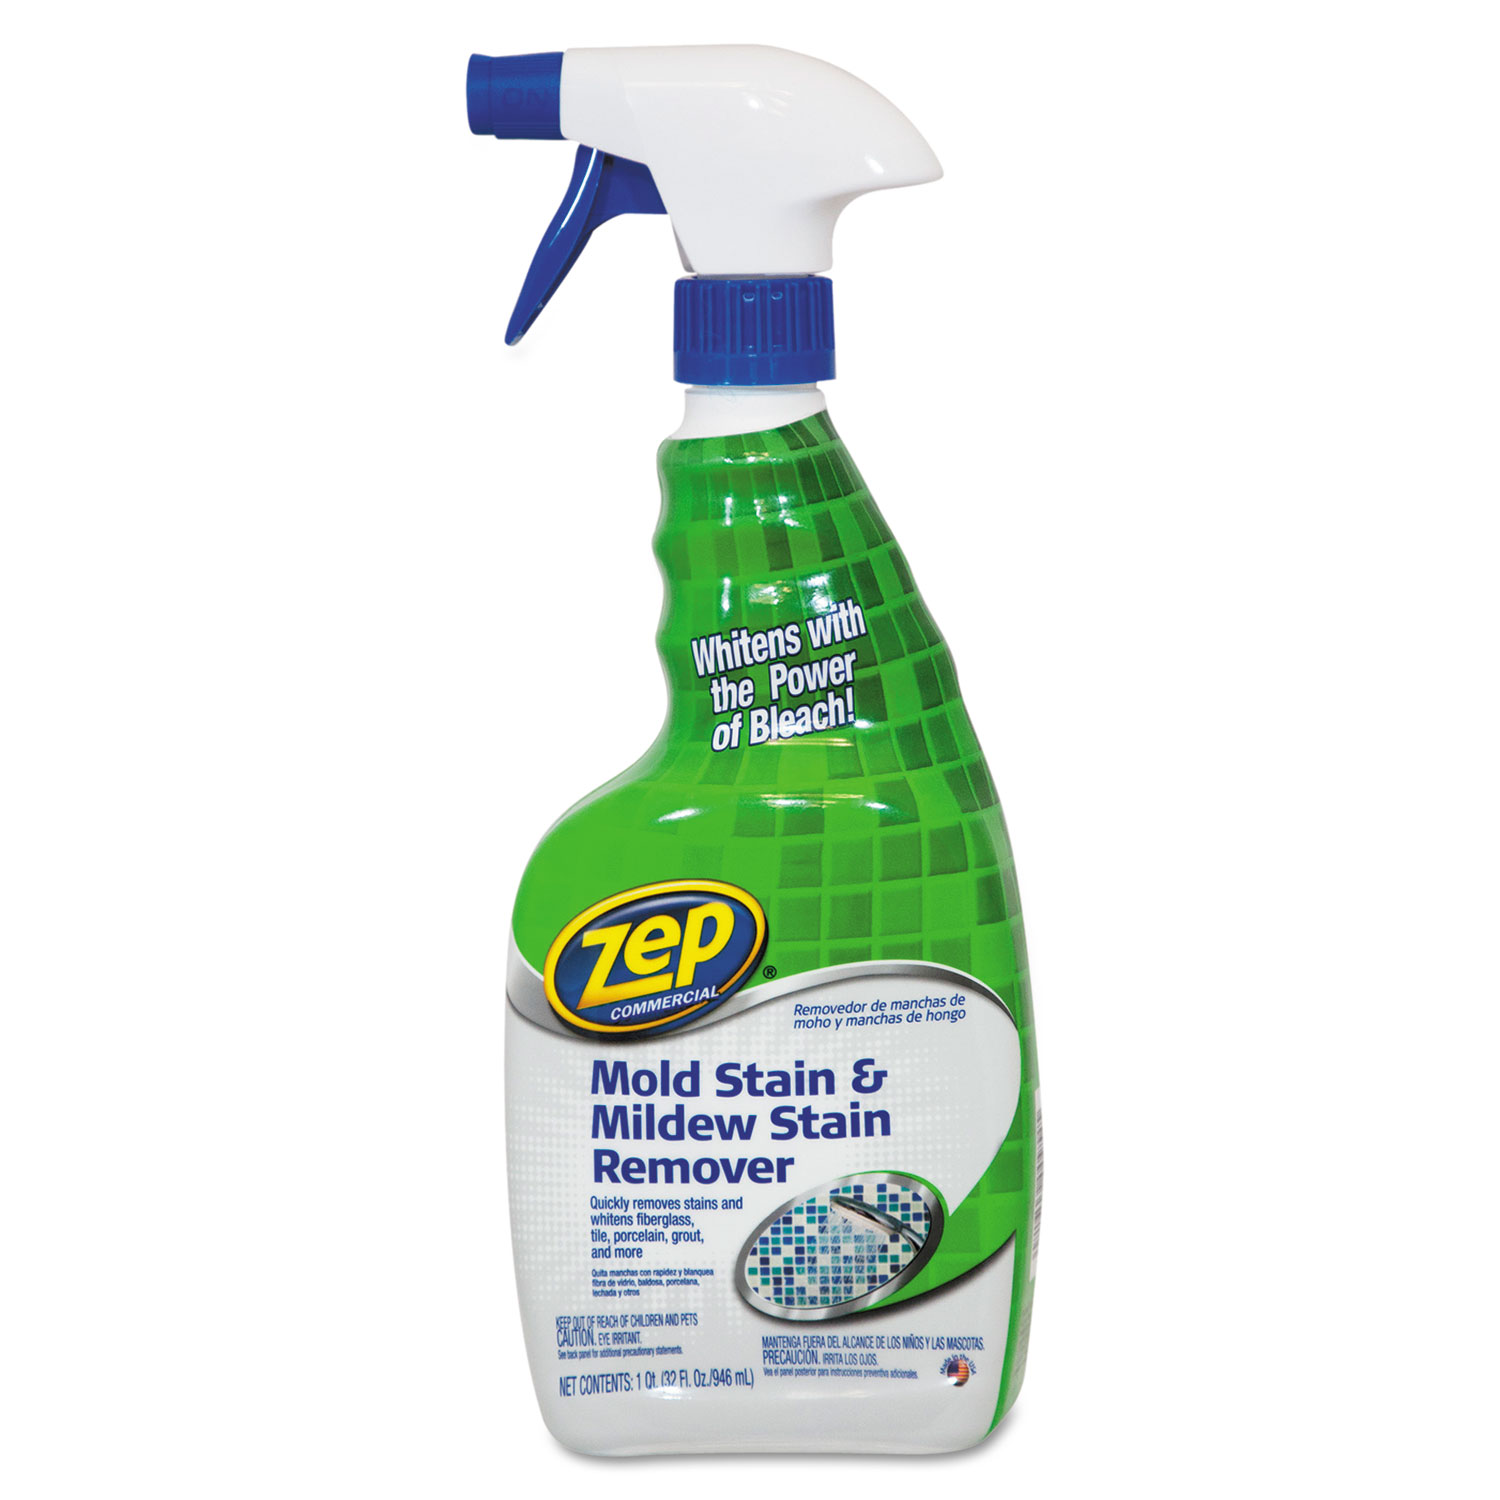 Mold Stain And Mildew Remover 32 Oz Spray Bottle Zpezumildew32ea